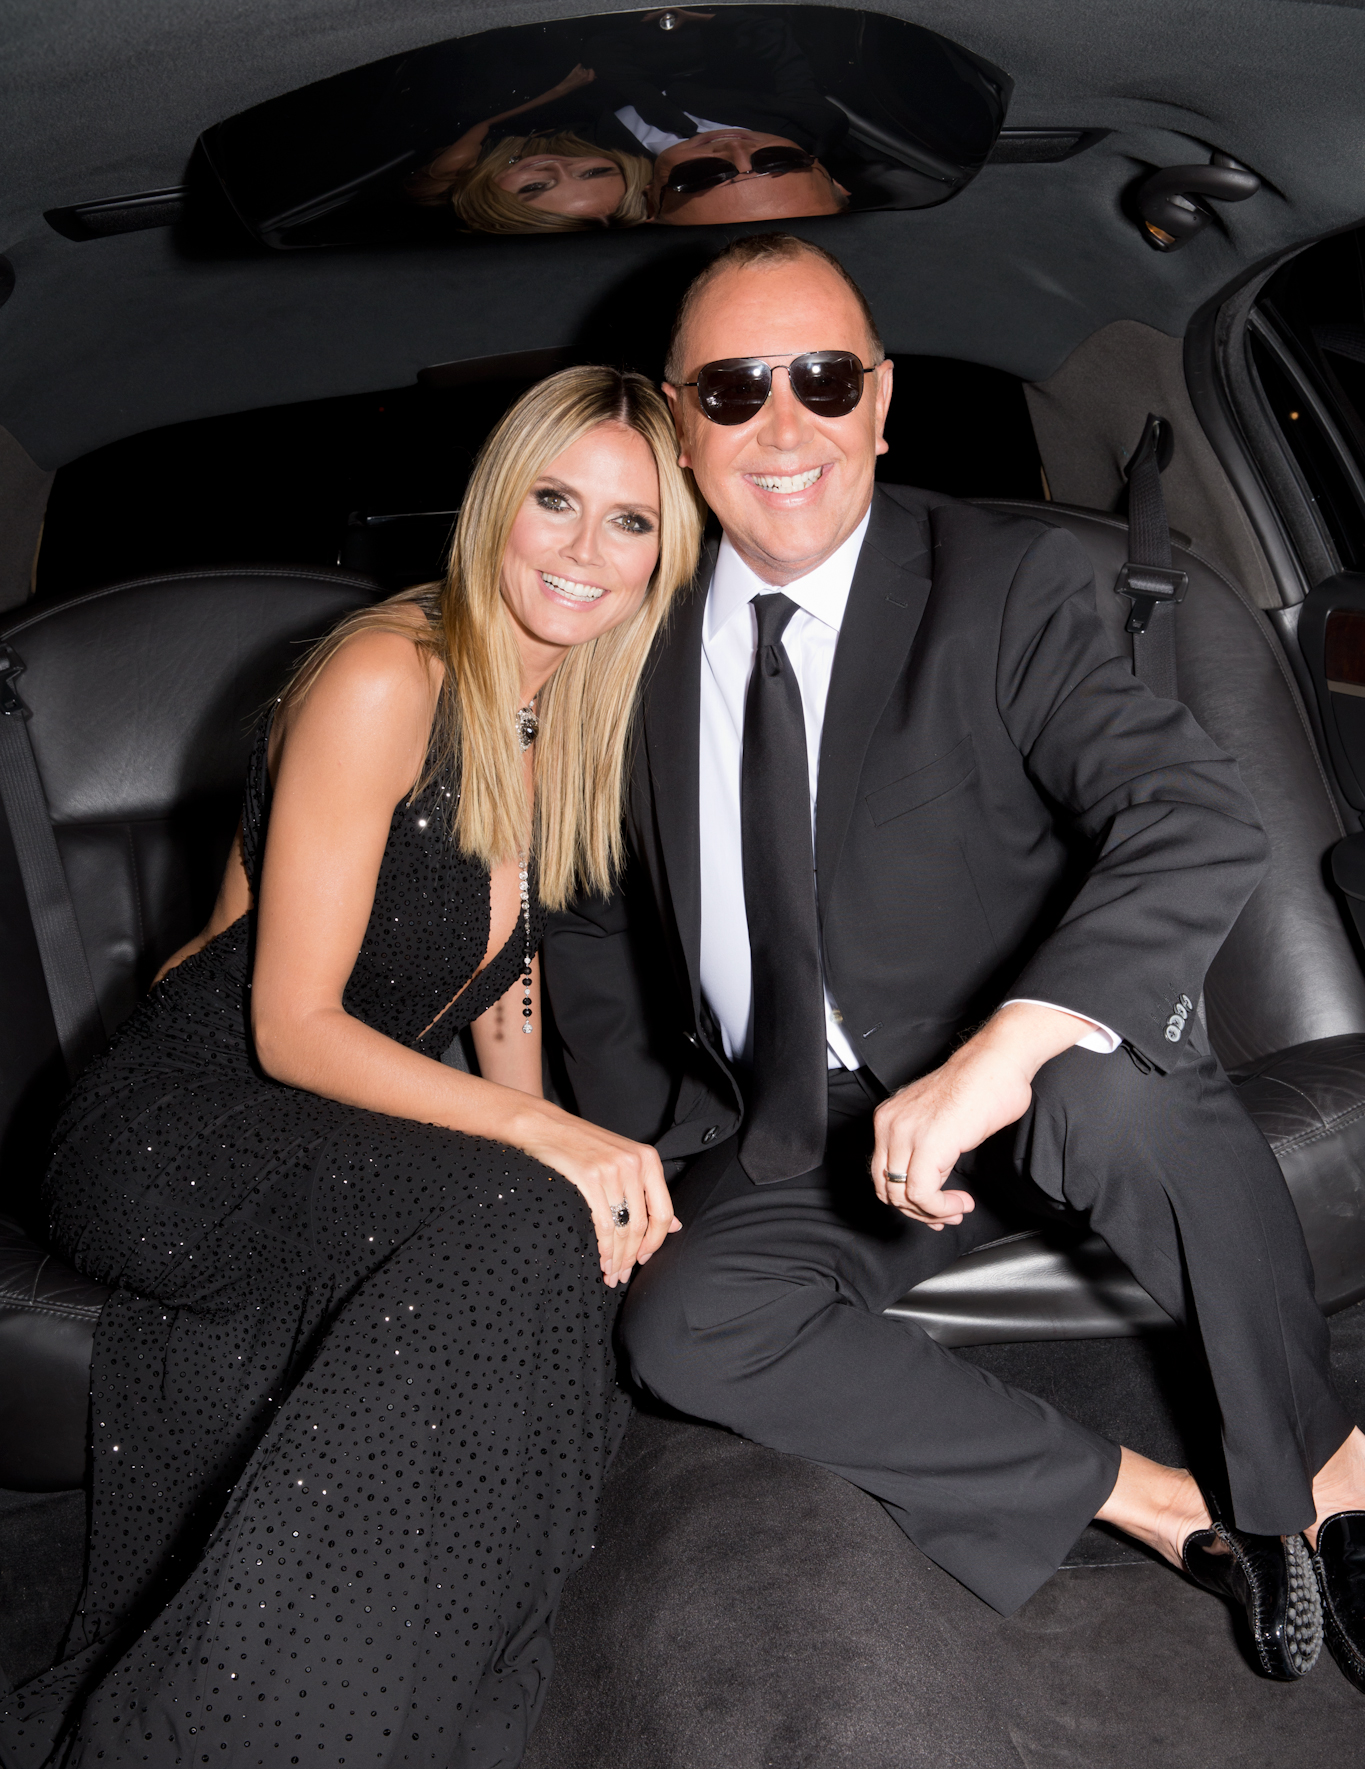 Heidi Klum and designer Michael Kors taking a ride in a limo